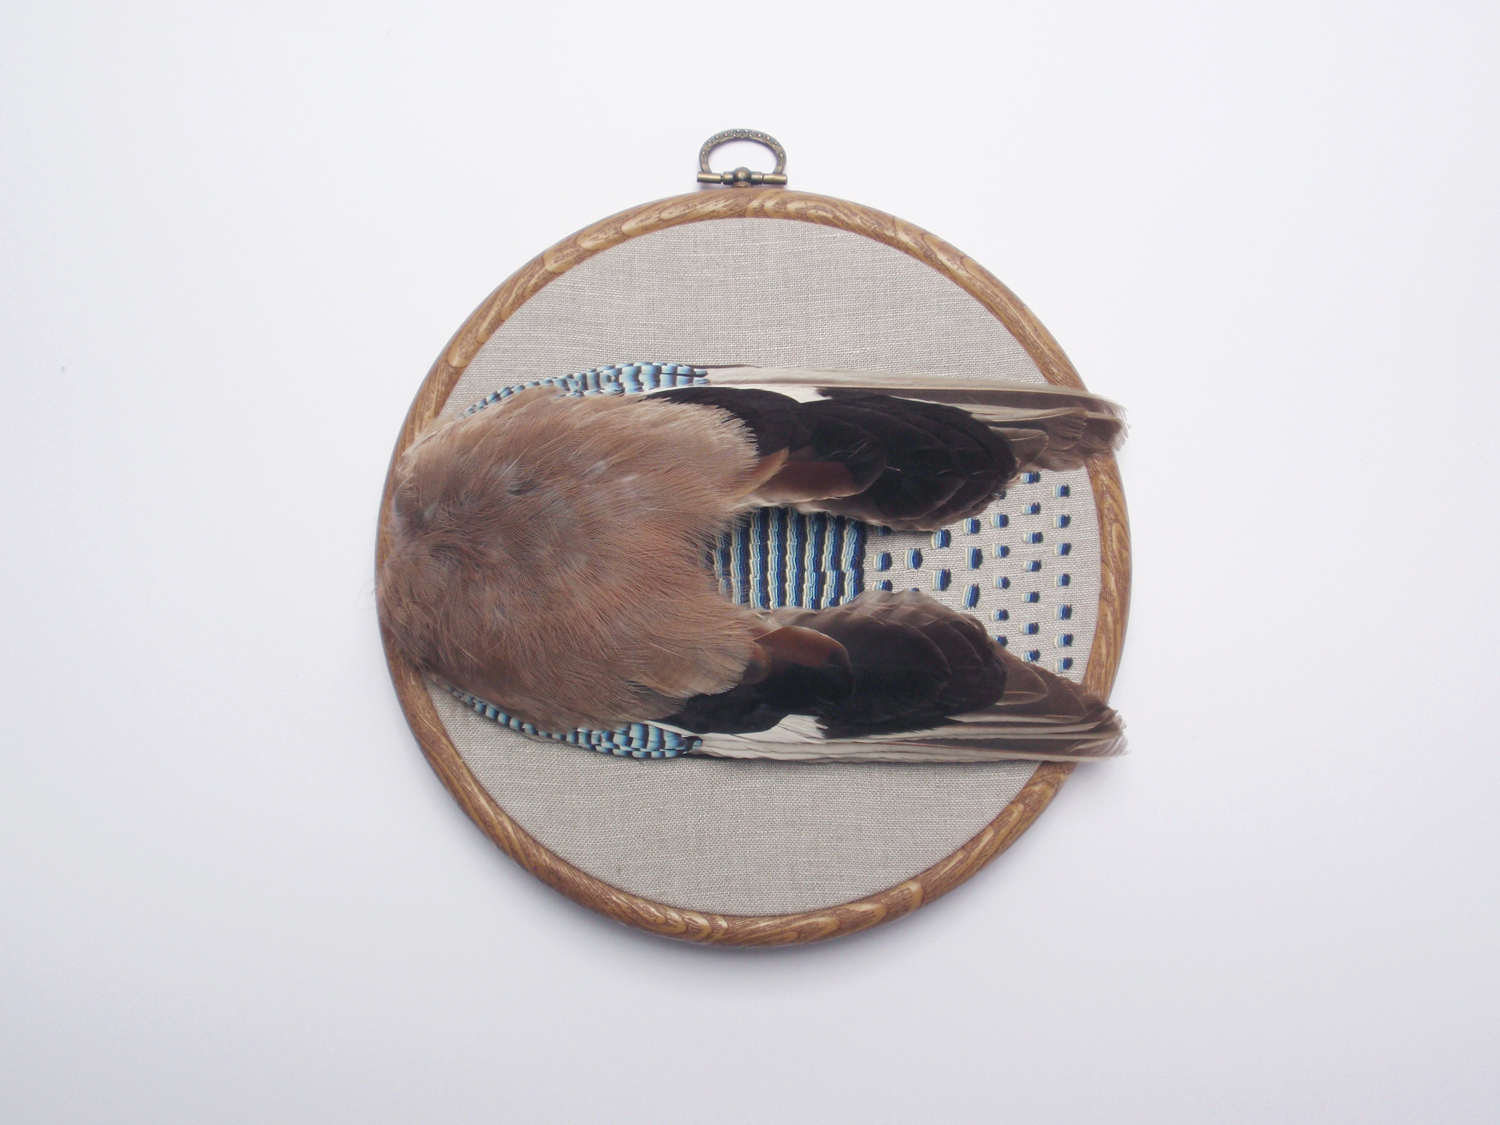 'Iridescent' (2014) Hand embroidery and vintage taxidermy on linen, readymade embroidery hoop, 19cm diameter.